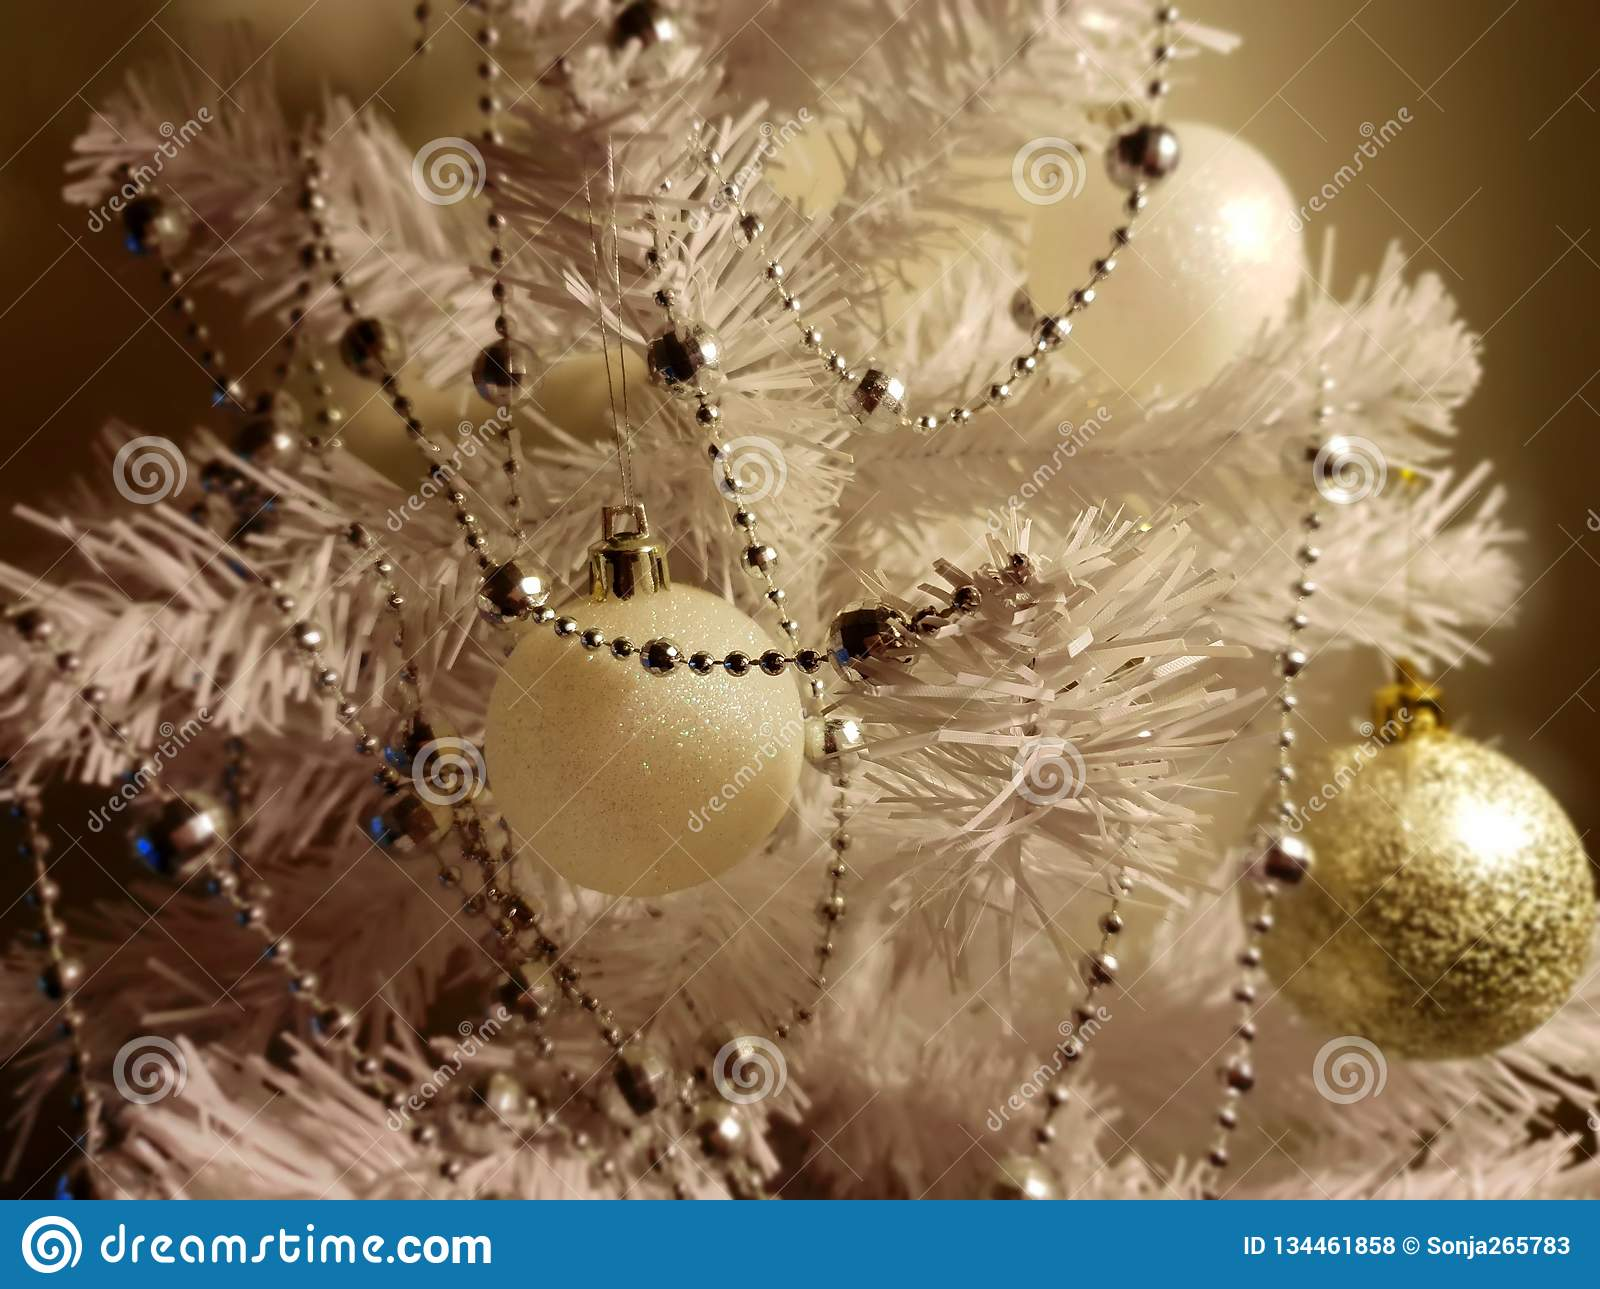 Silver Christmas Tree With Colorful Decoration Elements Of Holiday Happy New Year Stock Photo Image Of Creative Gift 134461858